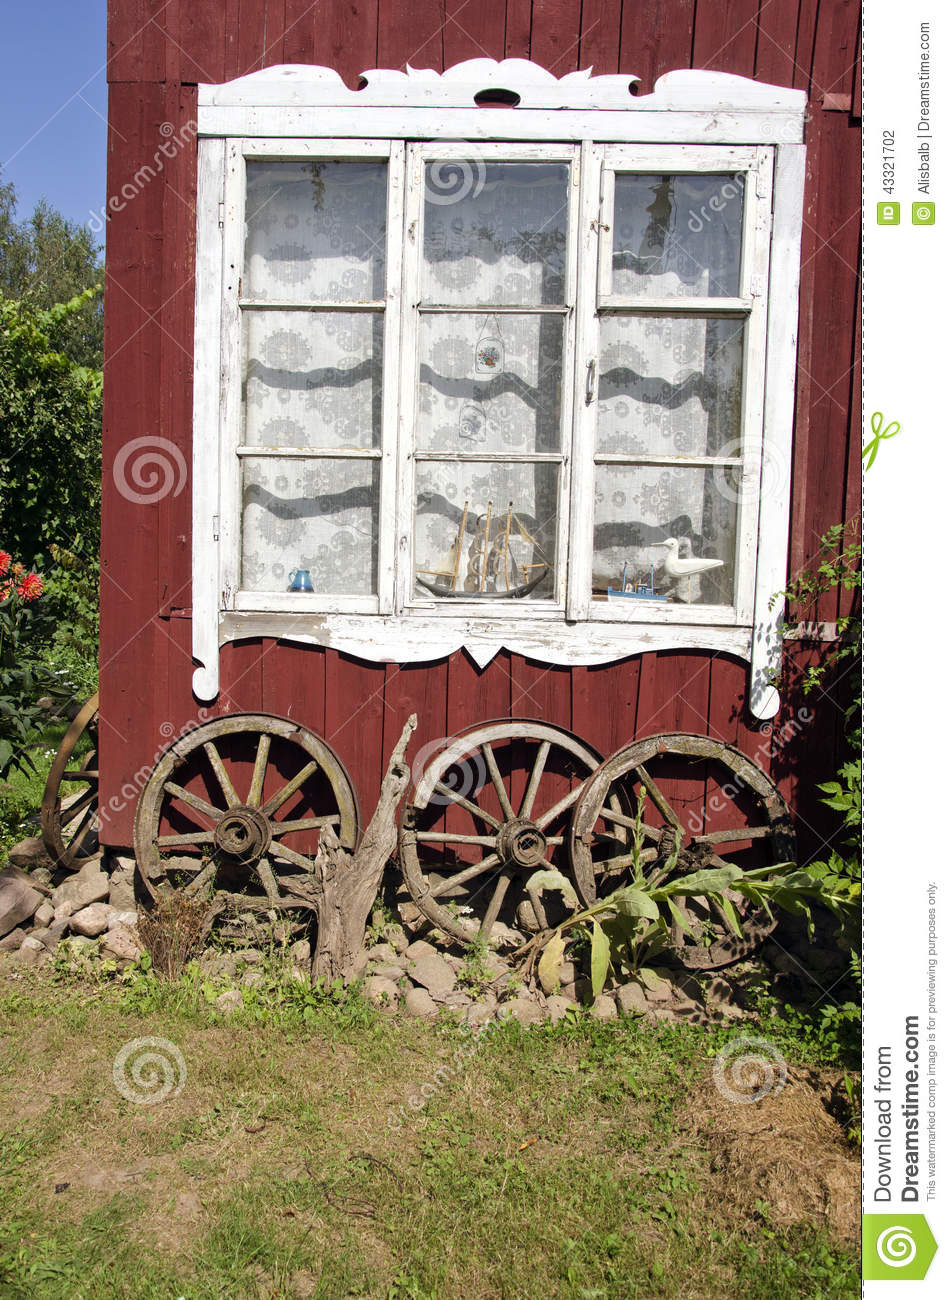 Village House Old Window With Ancient Horse Carriage Wheel Stock Photo Image Of Village House